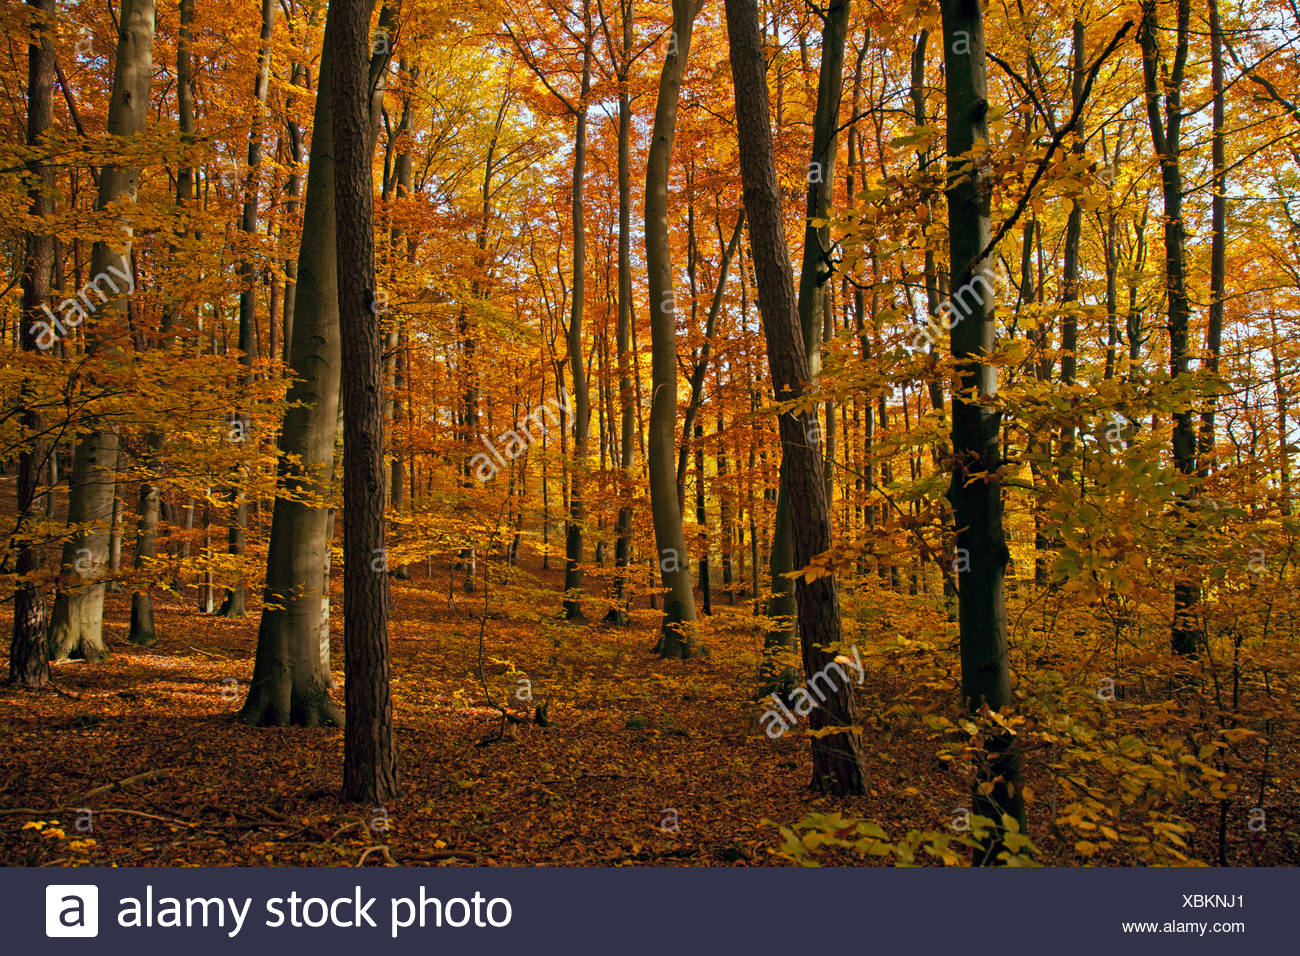 common beech (Fagus sylvatica), beech forest in autumn, Germany, Bavaria - Stock Image